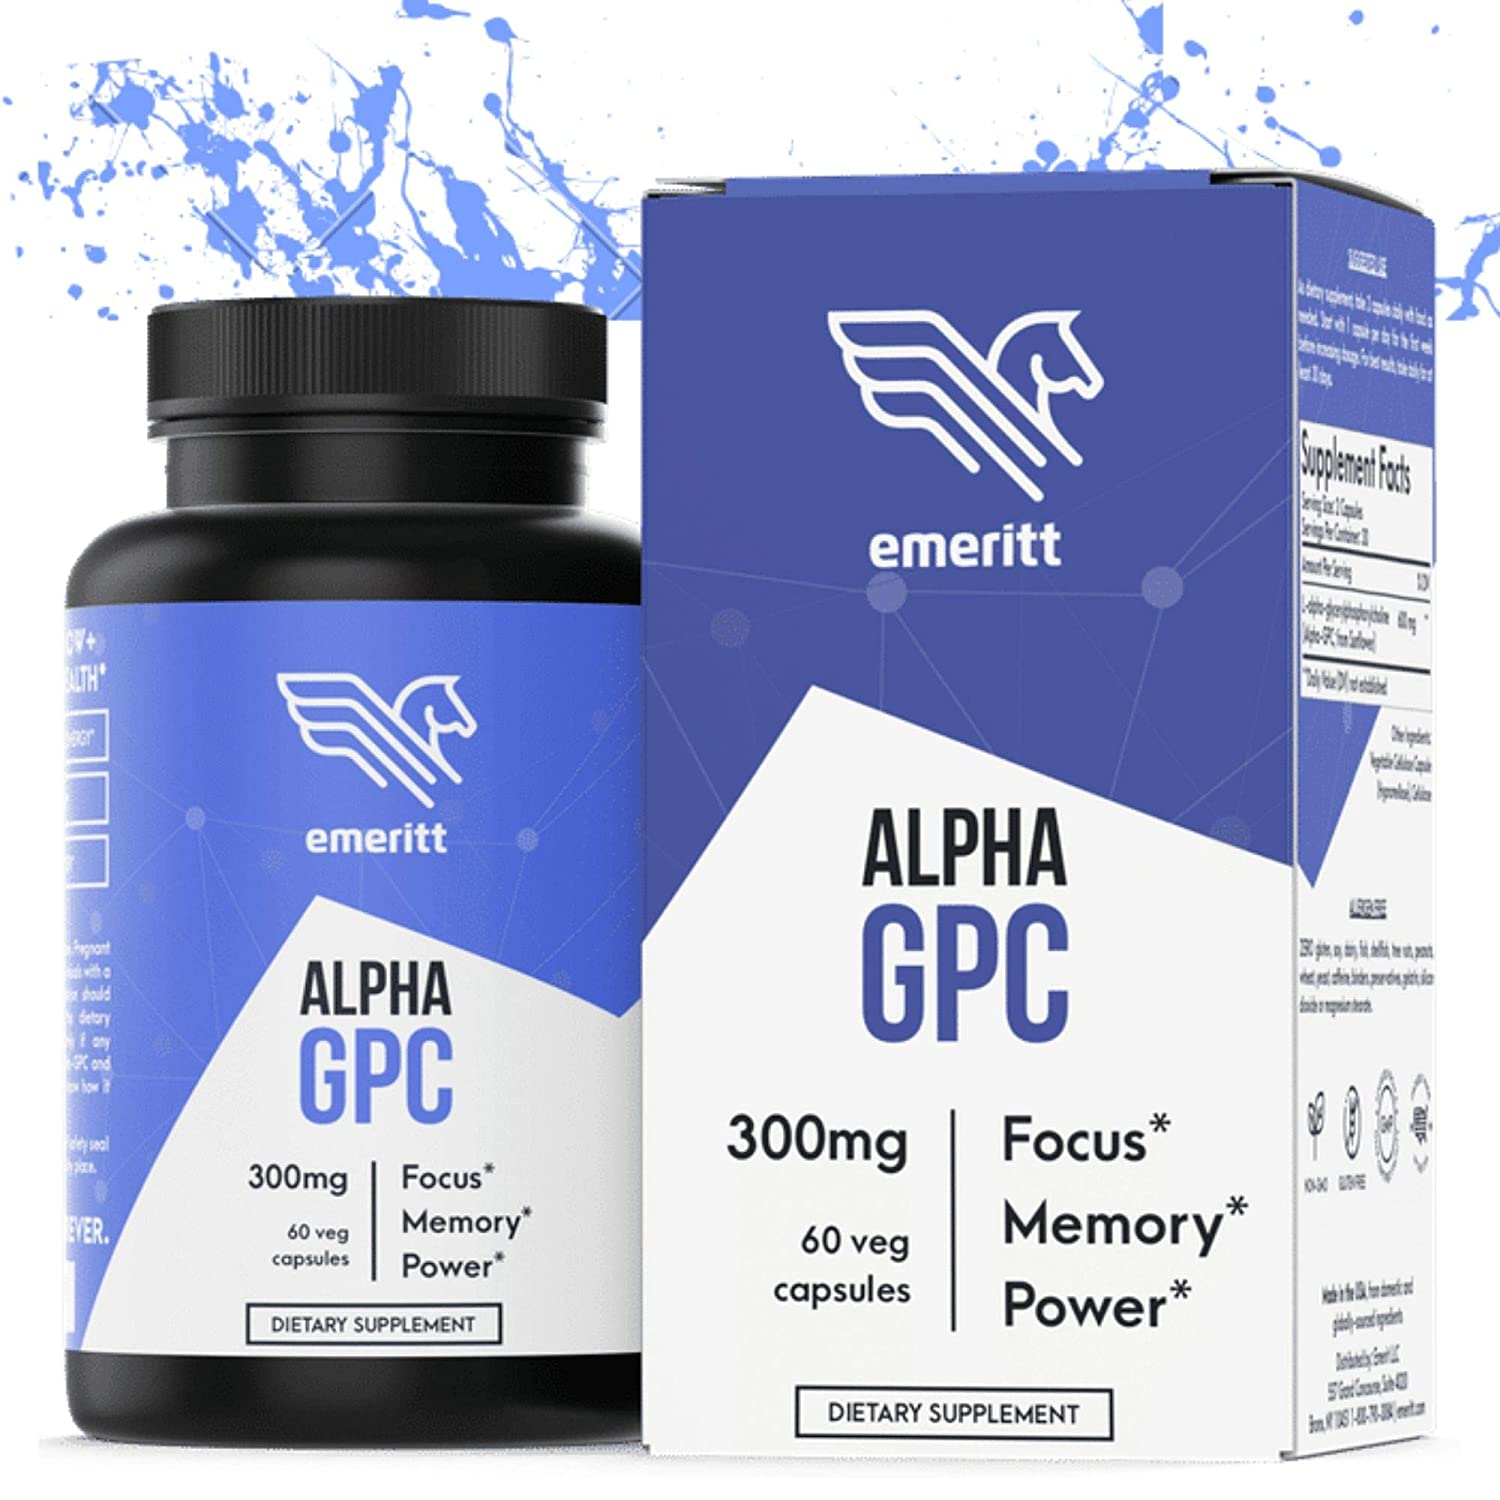 Alpha GPC Premium Choline Supplement Brain Nootropic from Pure Sunflower Lecithin for Brain Support, Enhanced Focus and Memory Vegan, Non GMO, No Soy, Pharmaceutical Grade 600 mg 30 Servings